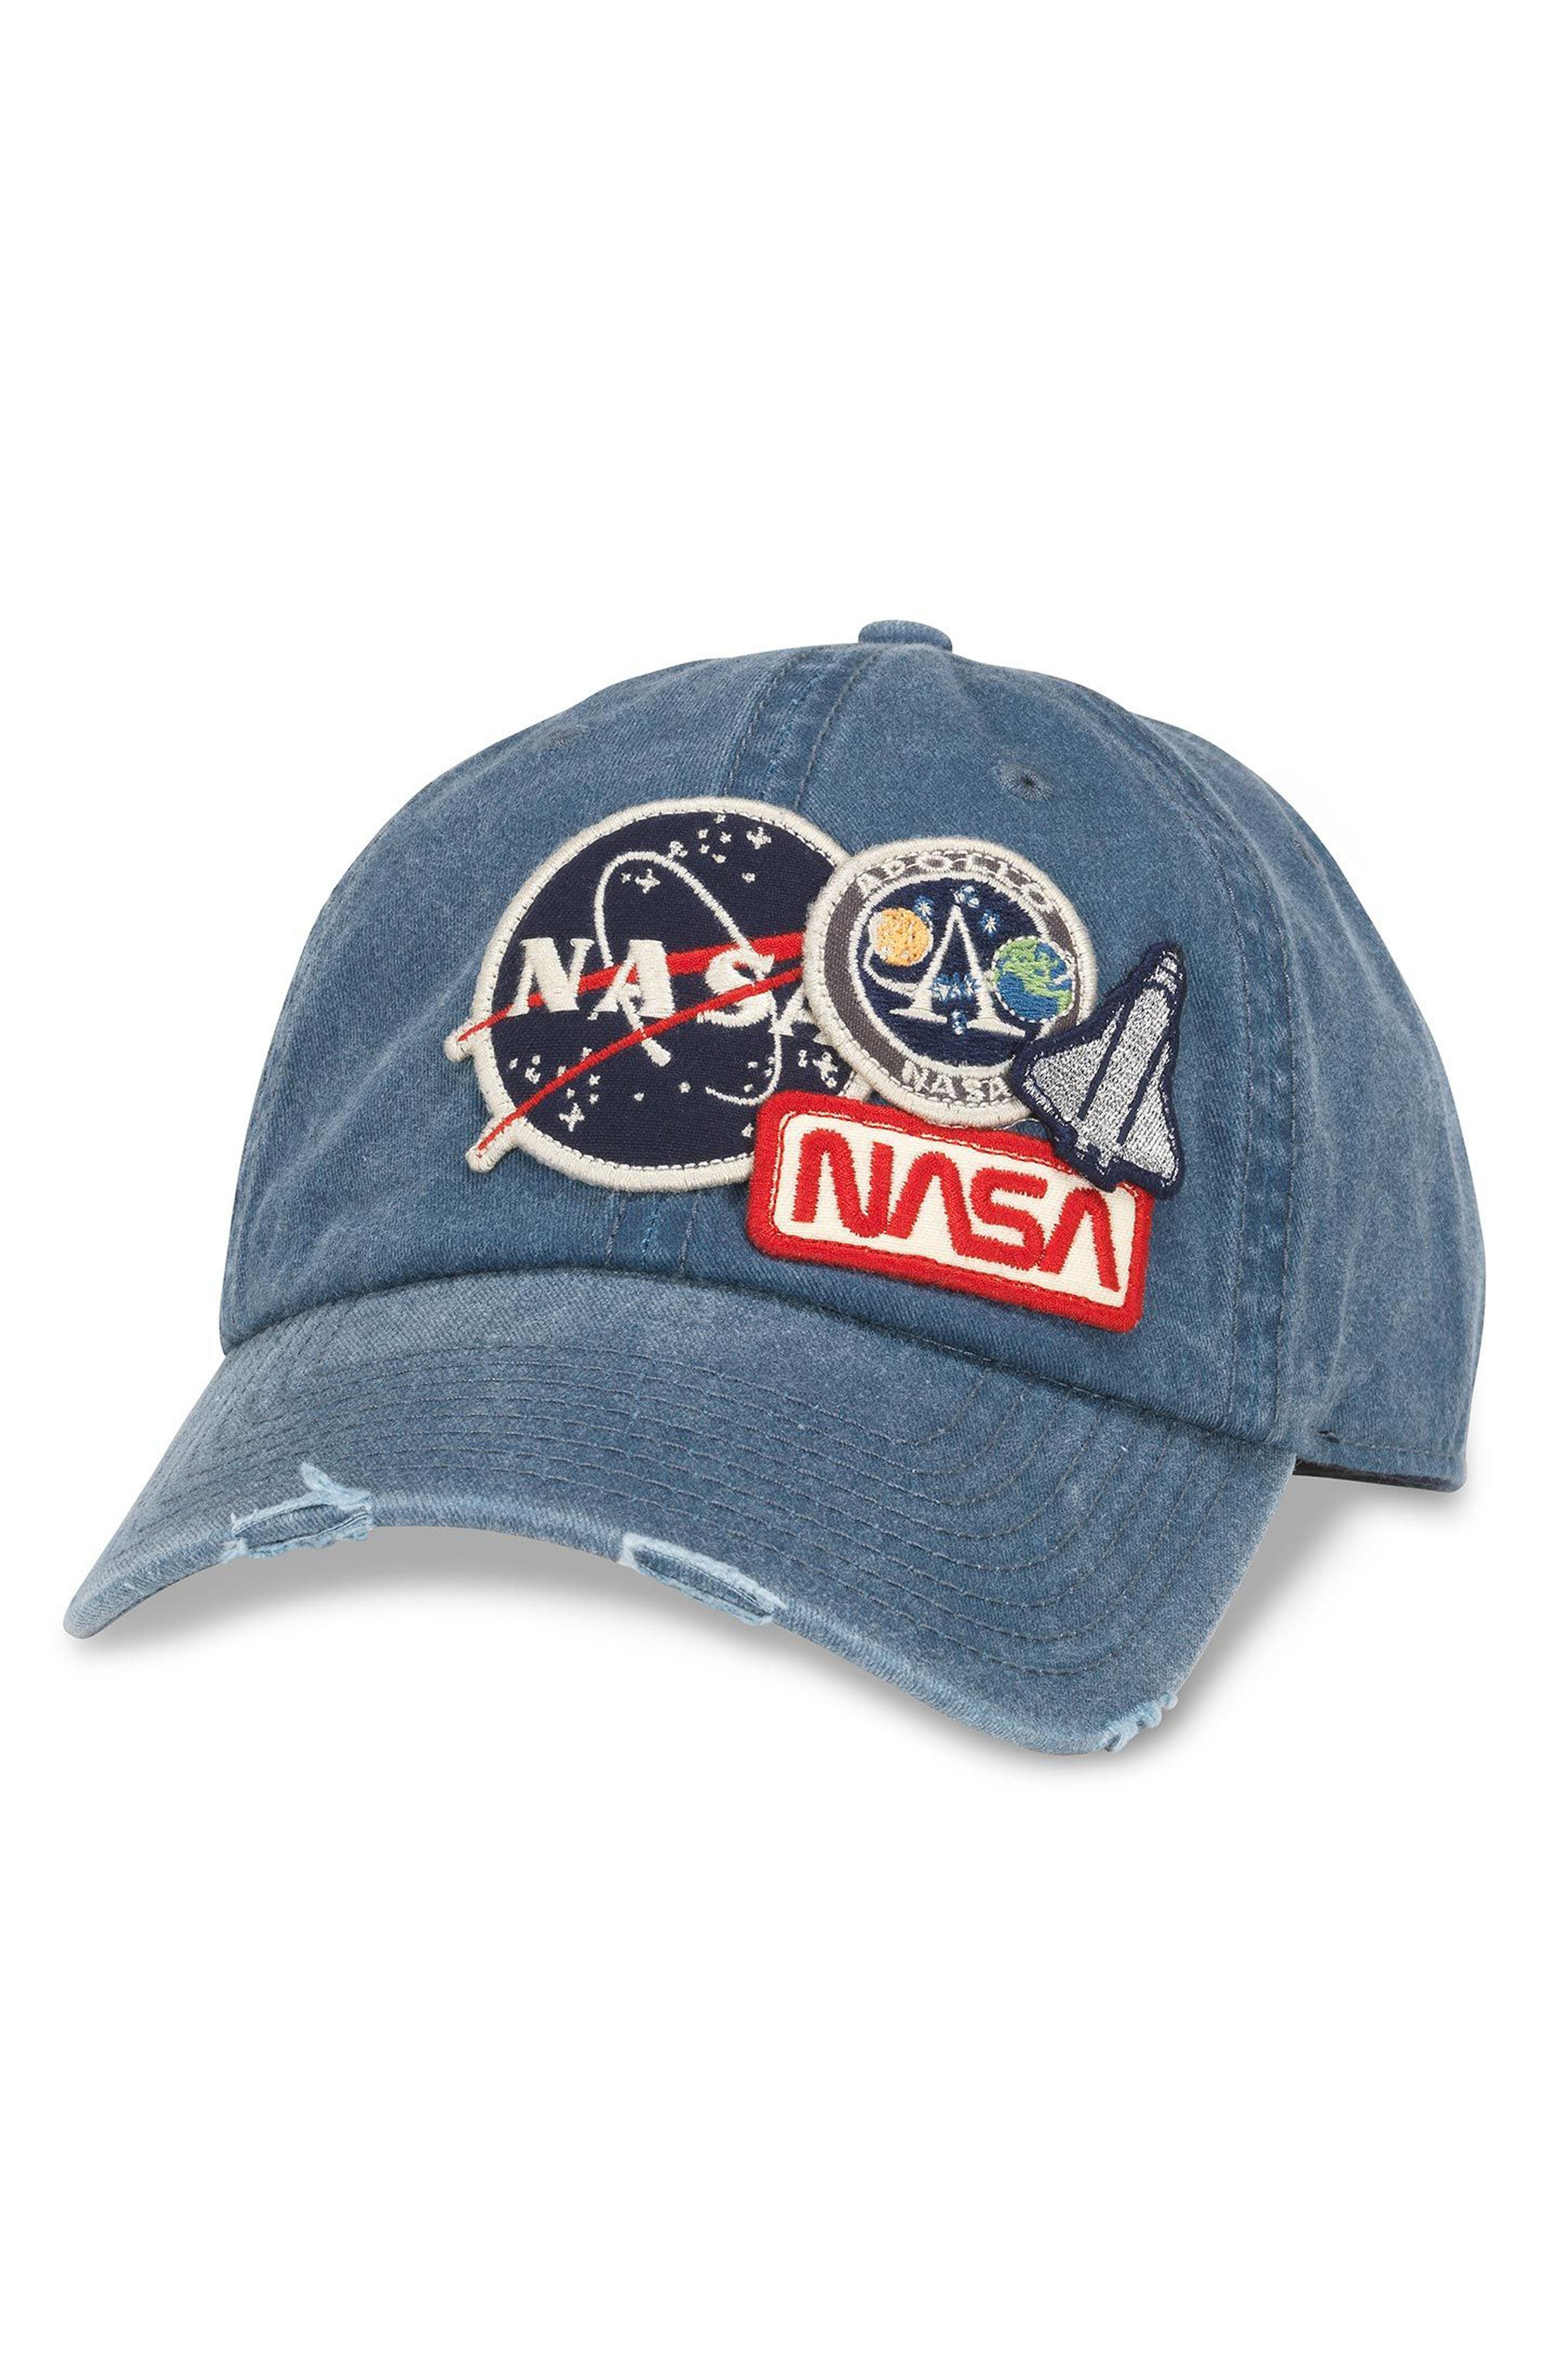 American Needle Iconic - NASA Ball Cap